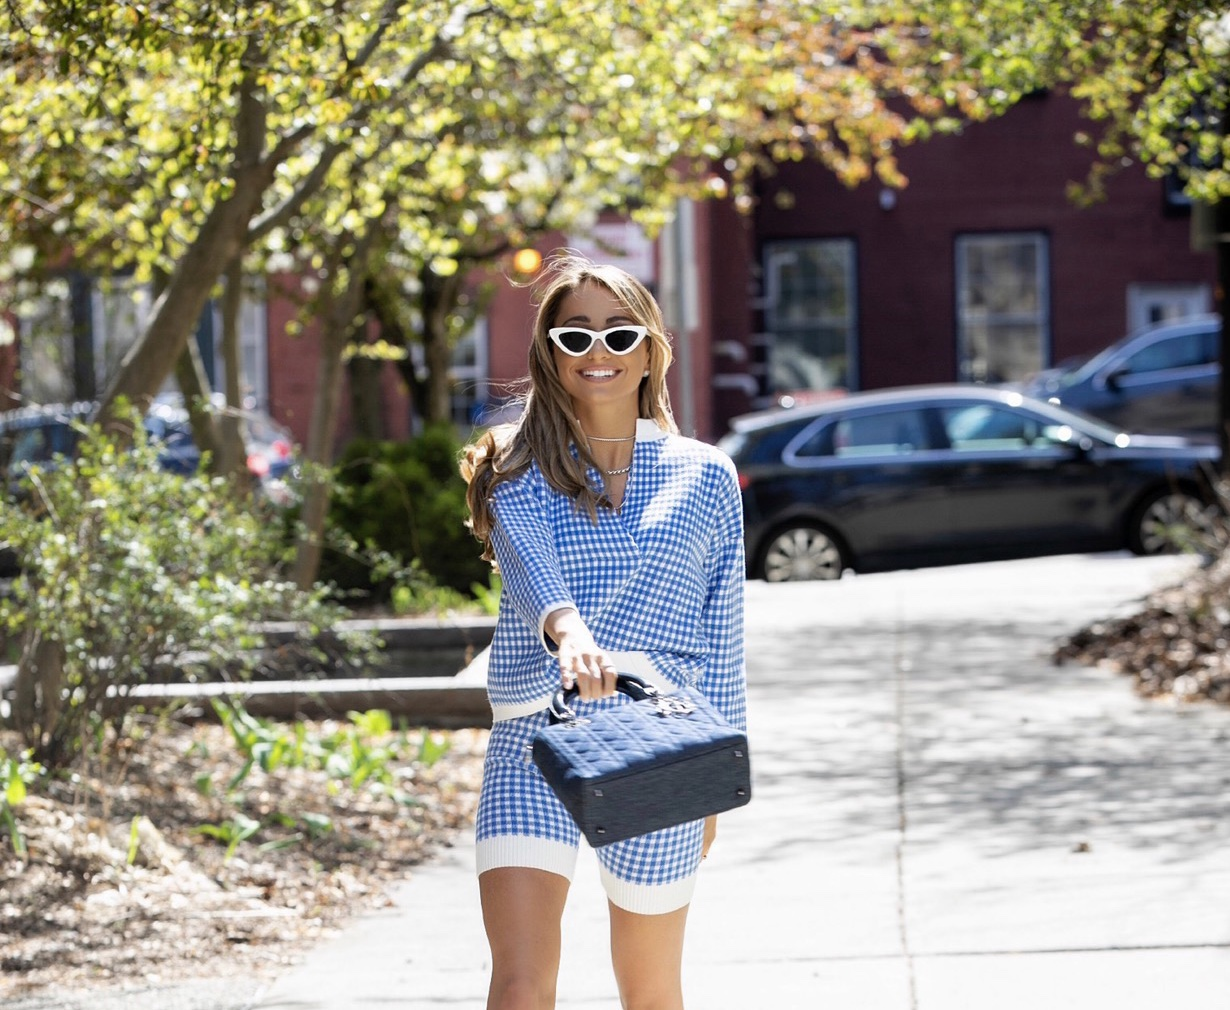 Asos White   Shorts  /   Top  | Boots:  Balenciaga  | Sunnies:   Le Specs  | Bag: Dior Via   Vivrelle   (use code:  Northofmanhattan  to get to the top of the wait list)    Dino Petrocelli Photography